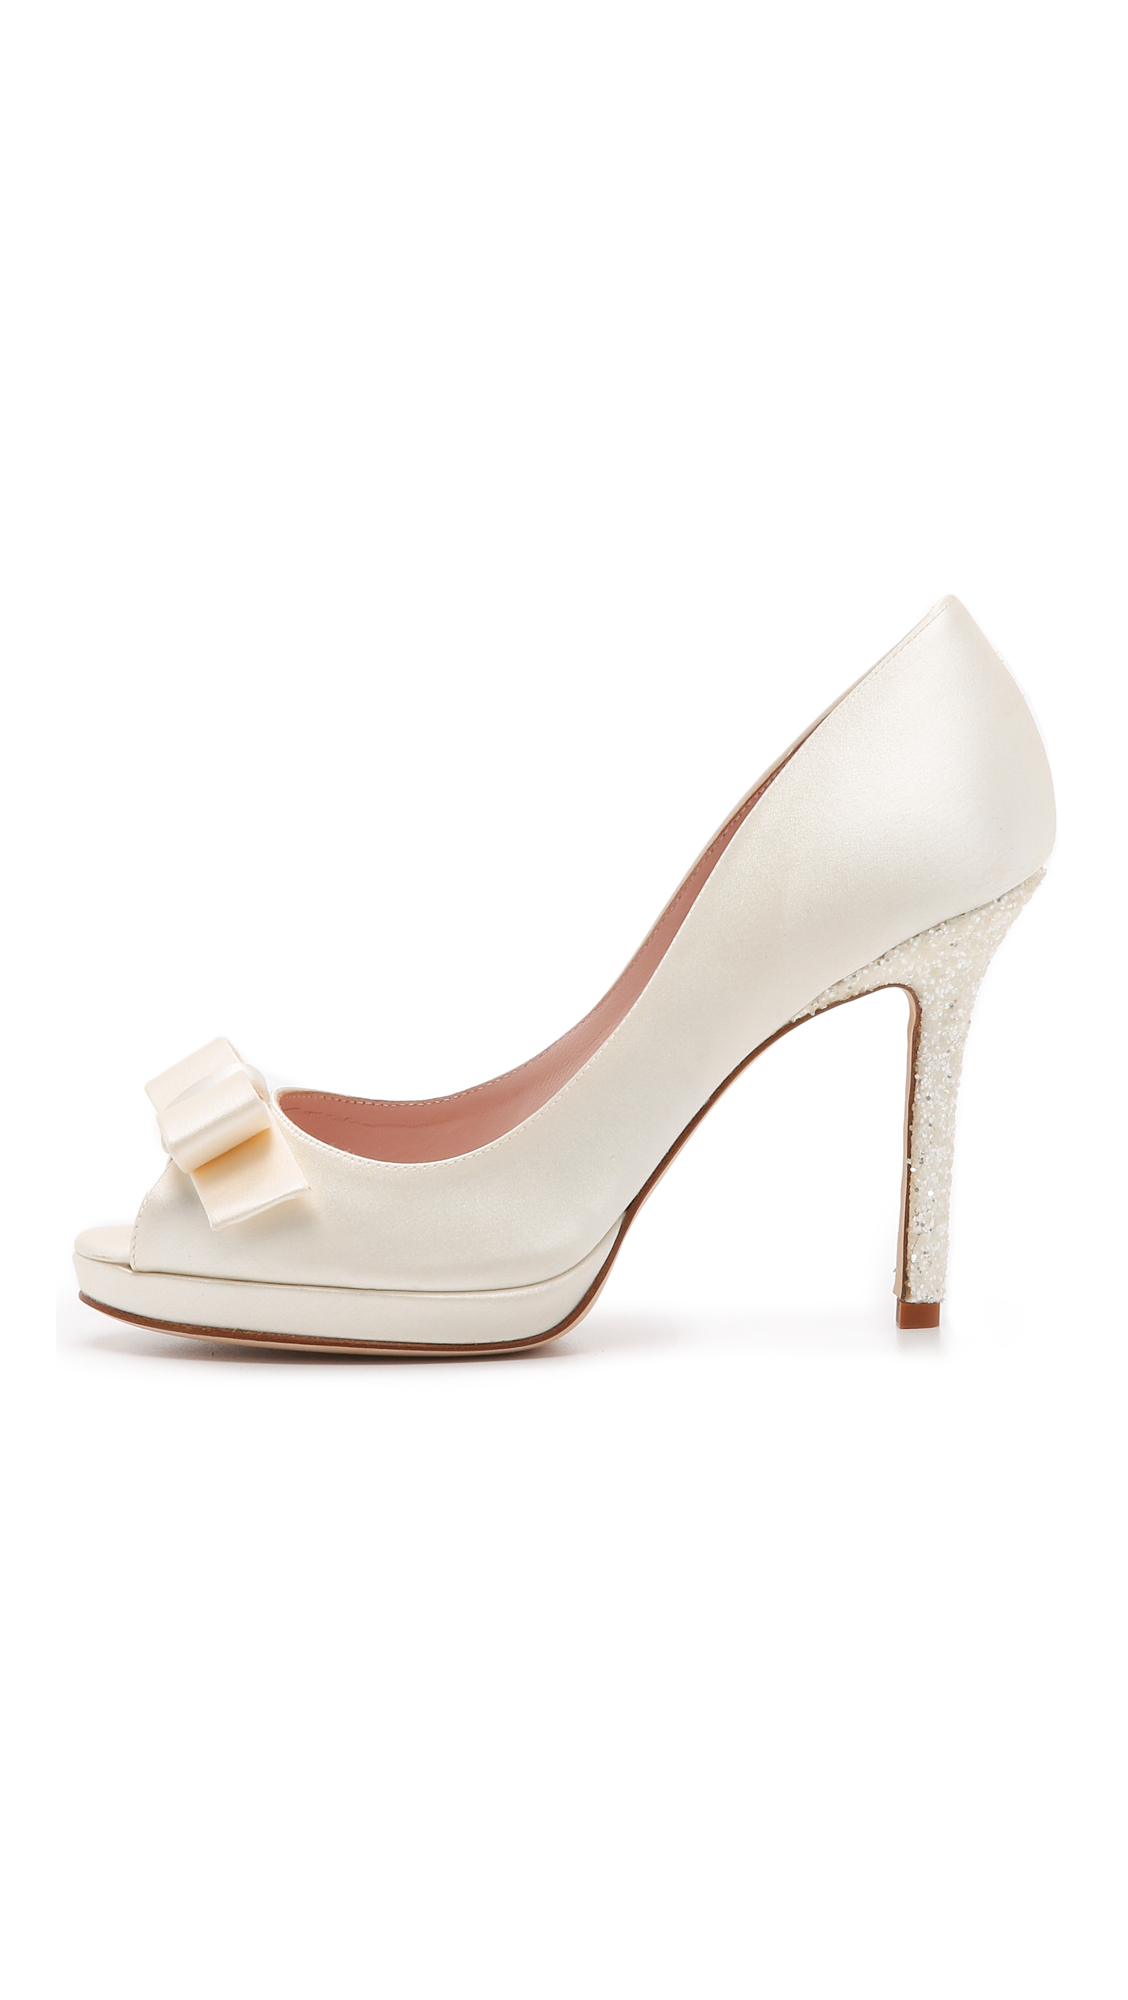 75fa0ad58d1 Lyst - Kate Spade Felisha Peep Toe Pumps - Ivory in White